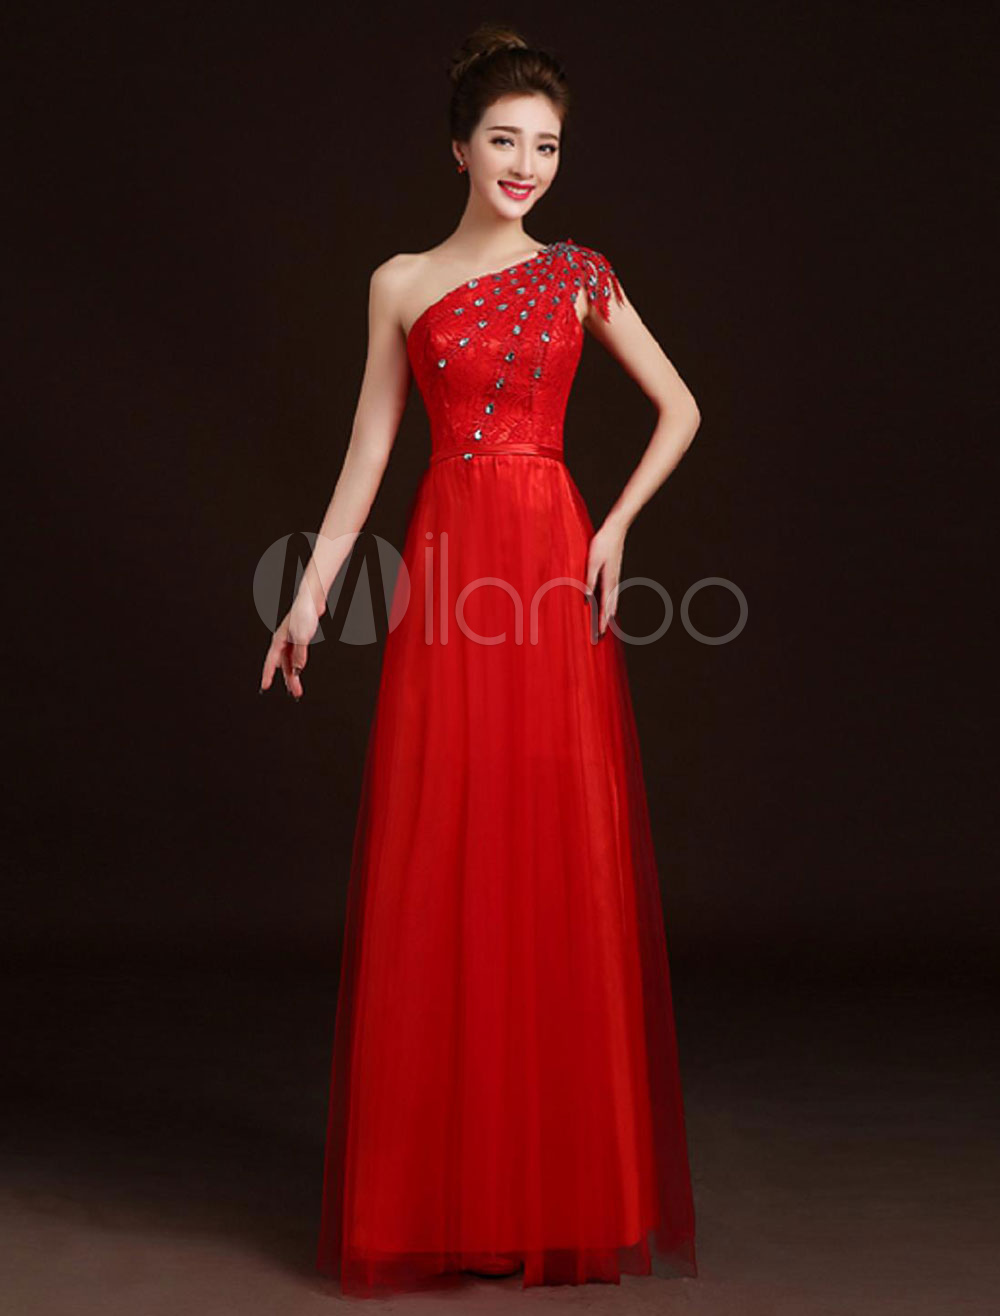 Red Evening Dresses One Shoulder Beaded Lace Tulle Floor Length Formal Party Dress (Wedding Cheap Party Dress) photo